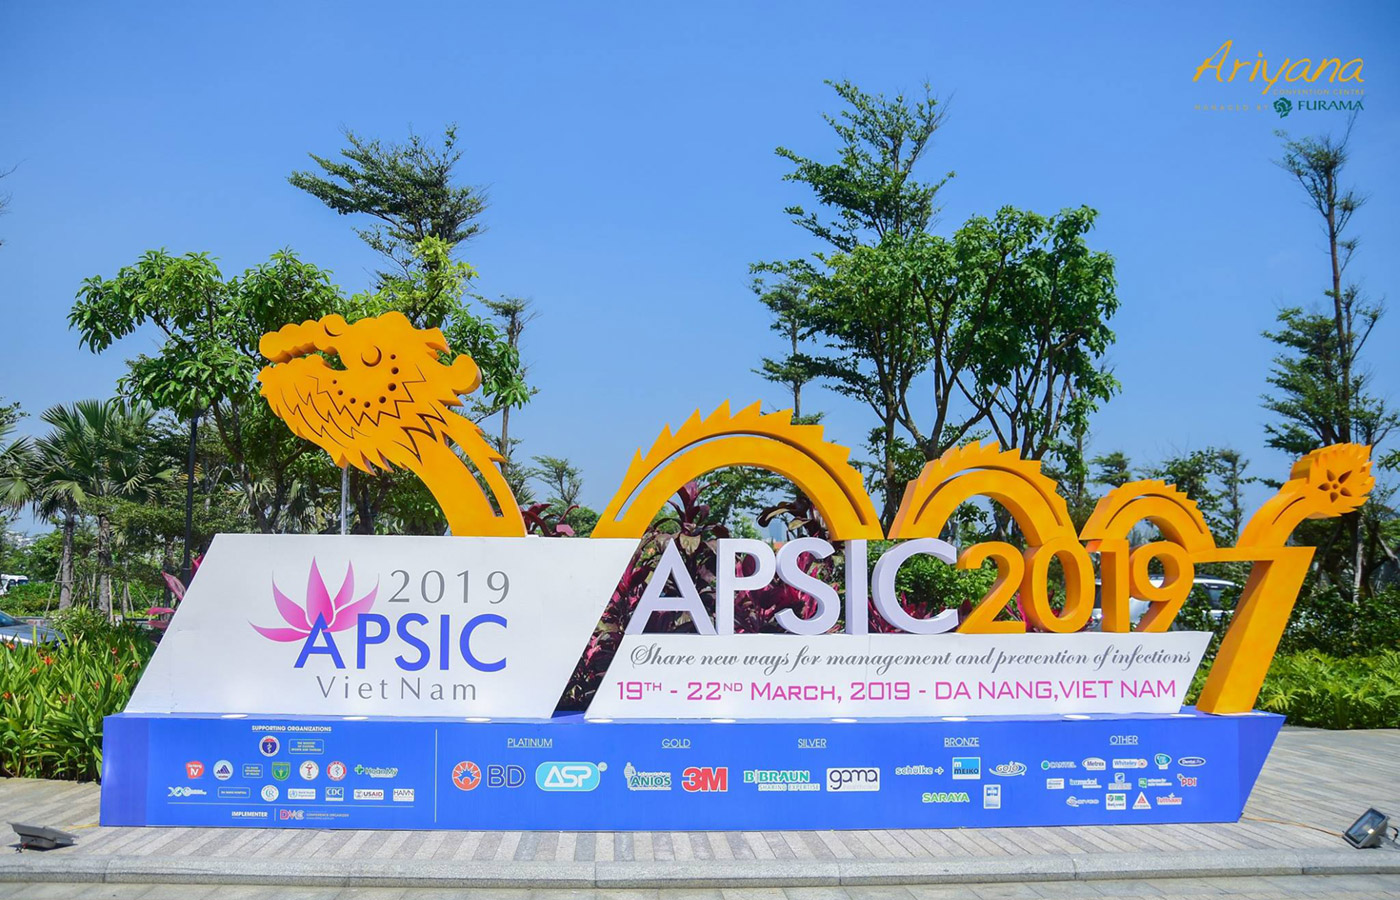 9th INTERNATIONAL ASIA PACIFIC SOCIETY OF INFECTION CONTROL